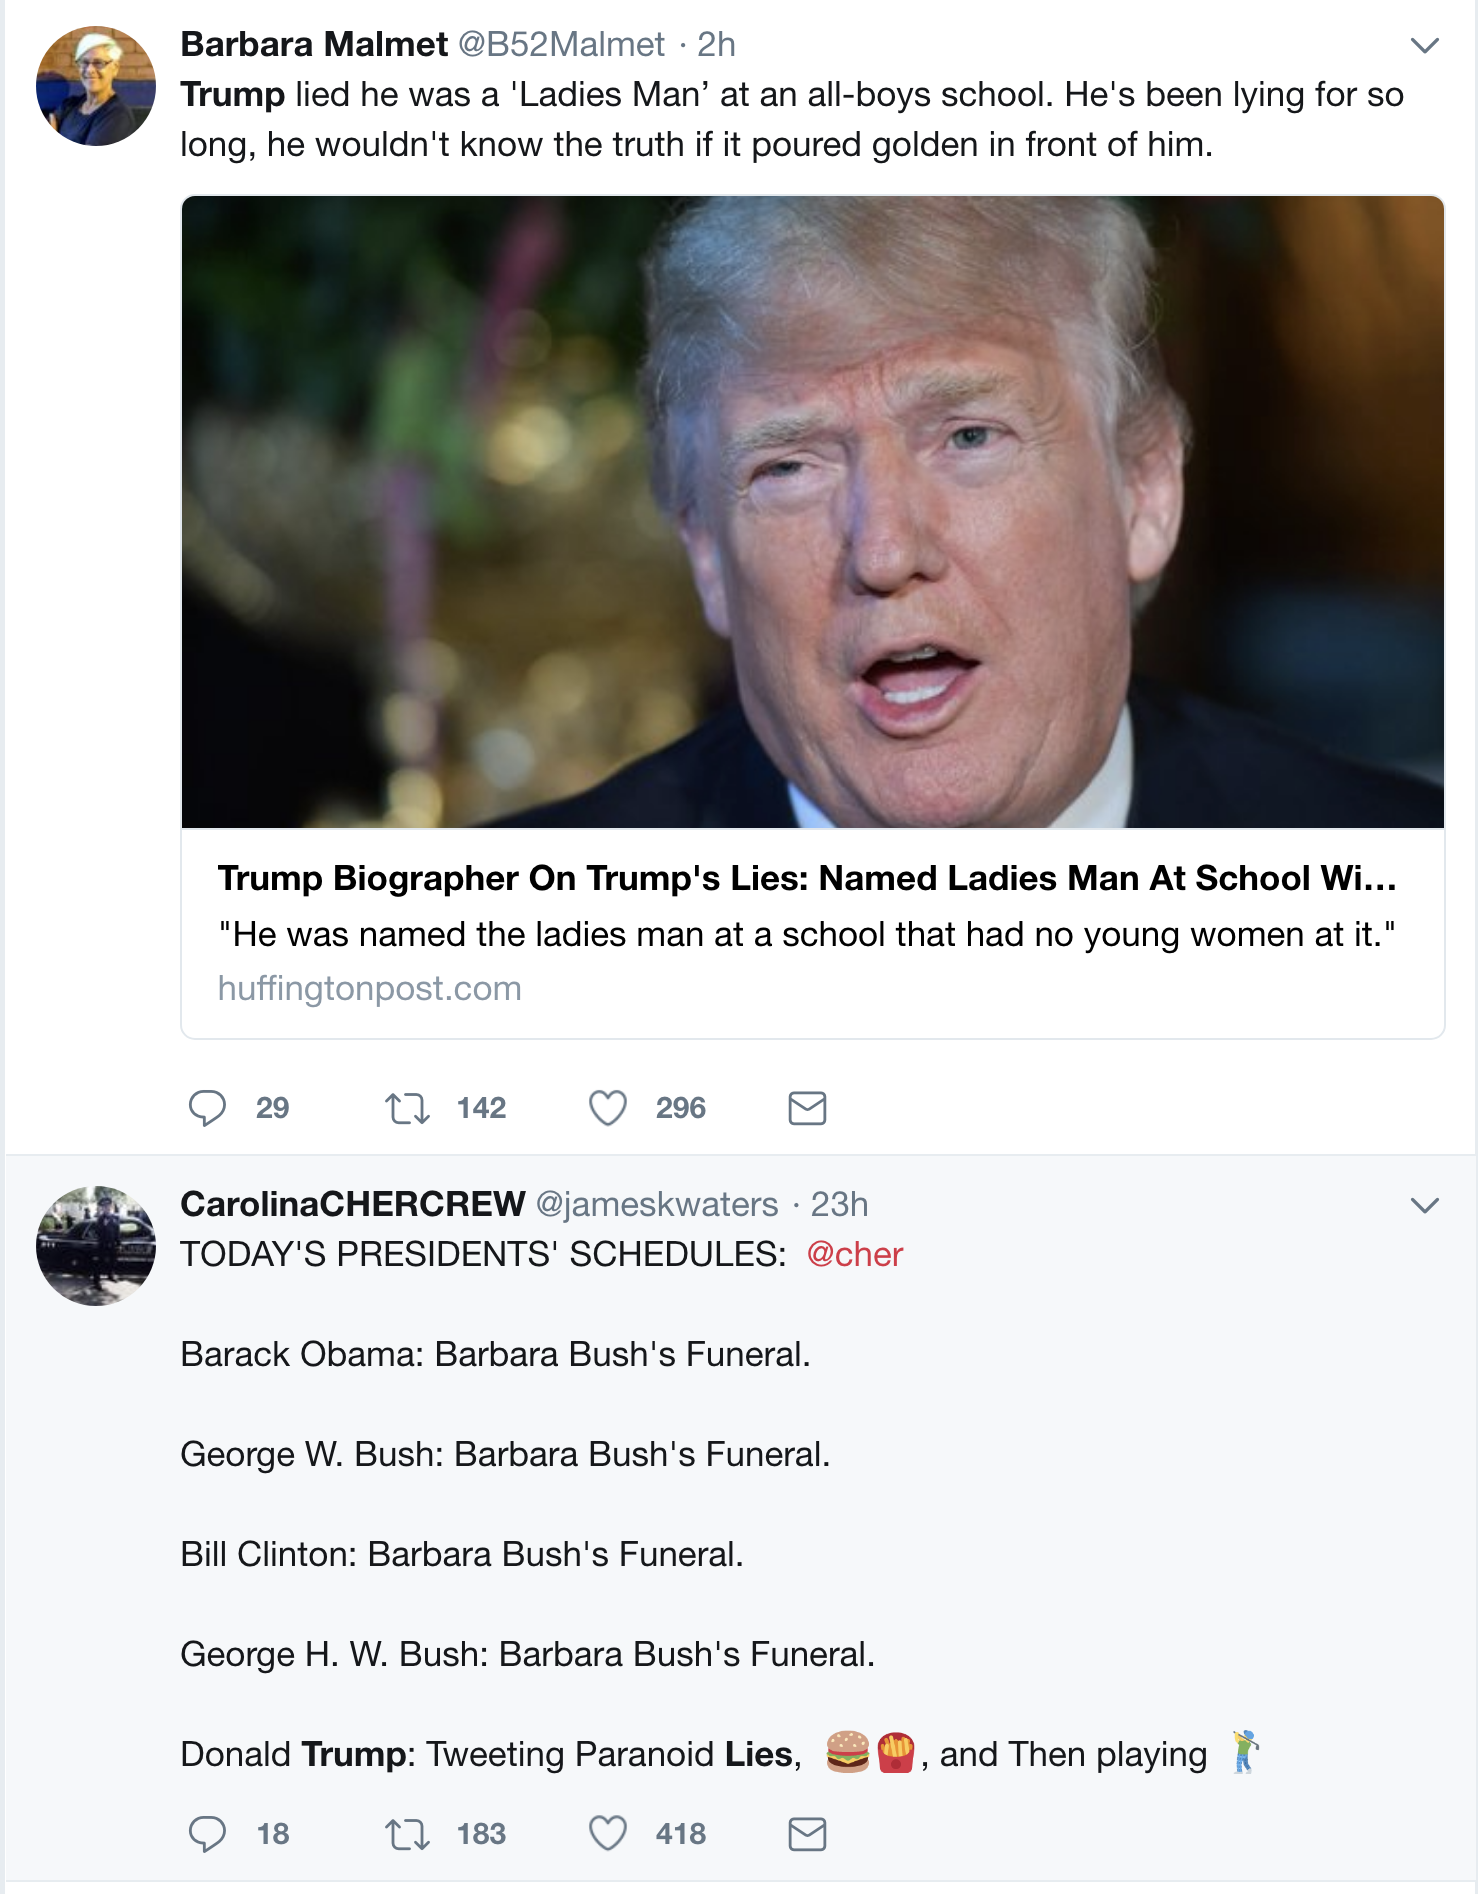 Screen-Shot-2018-04-22-at-10.38.20-AM1 Trump Humiliated; Lies About Being A 'Ladies Man' In School Exposed & It's Hilarious Corruption Donald Trump Politics Top Stories